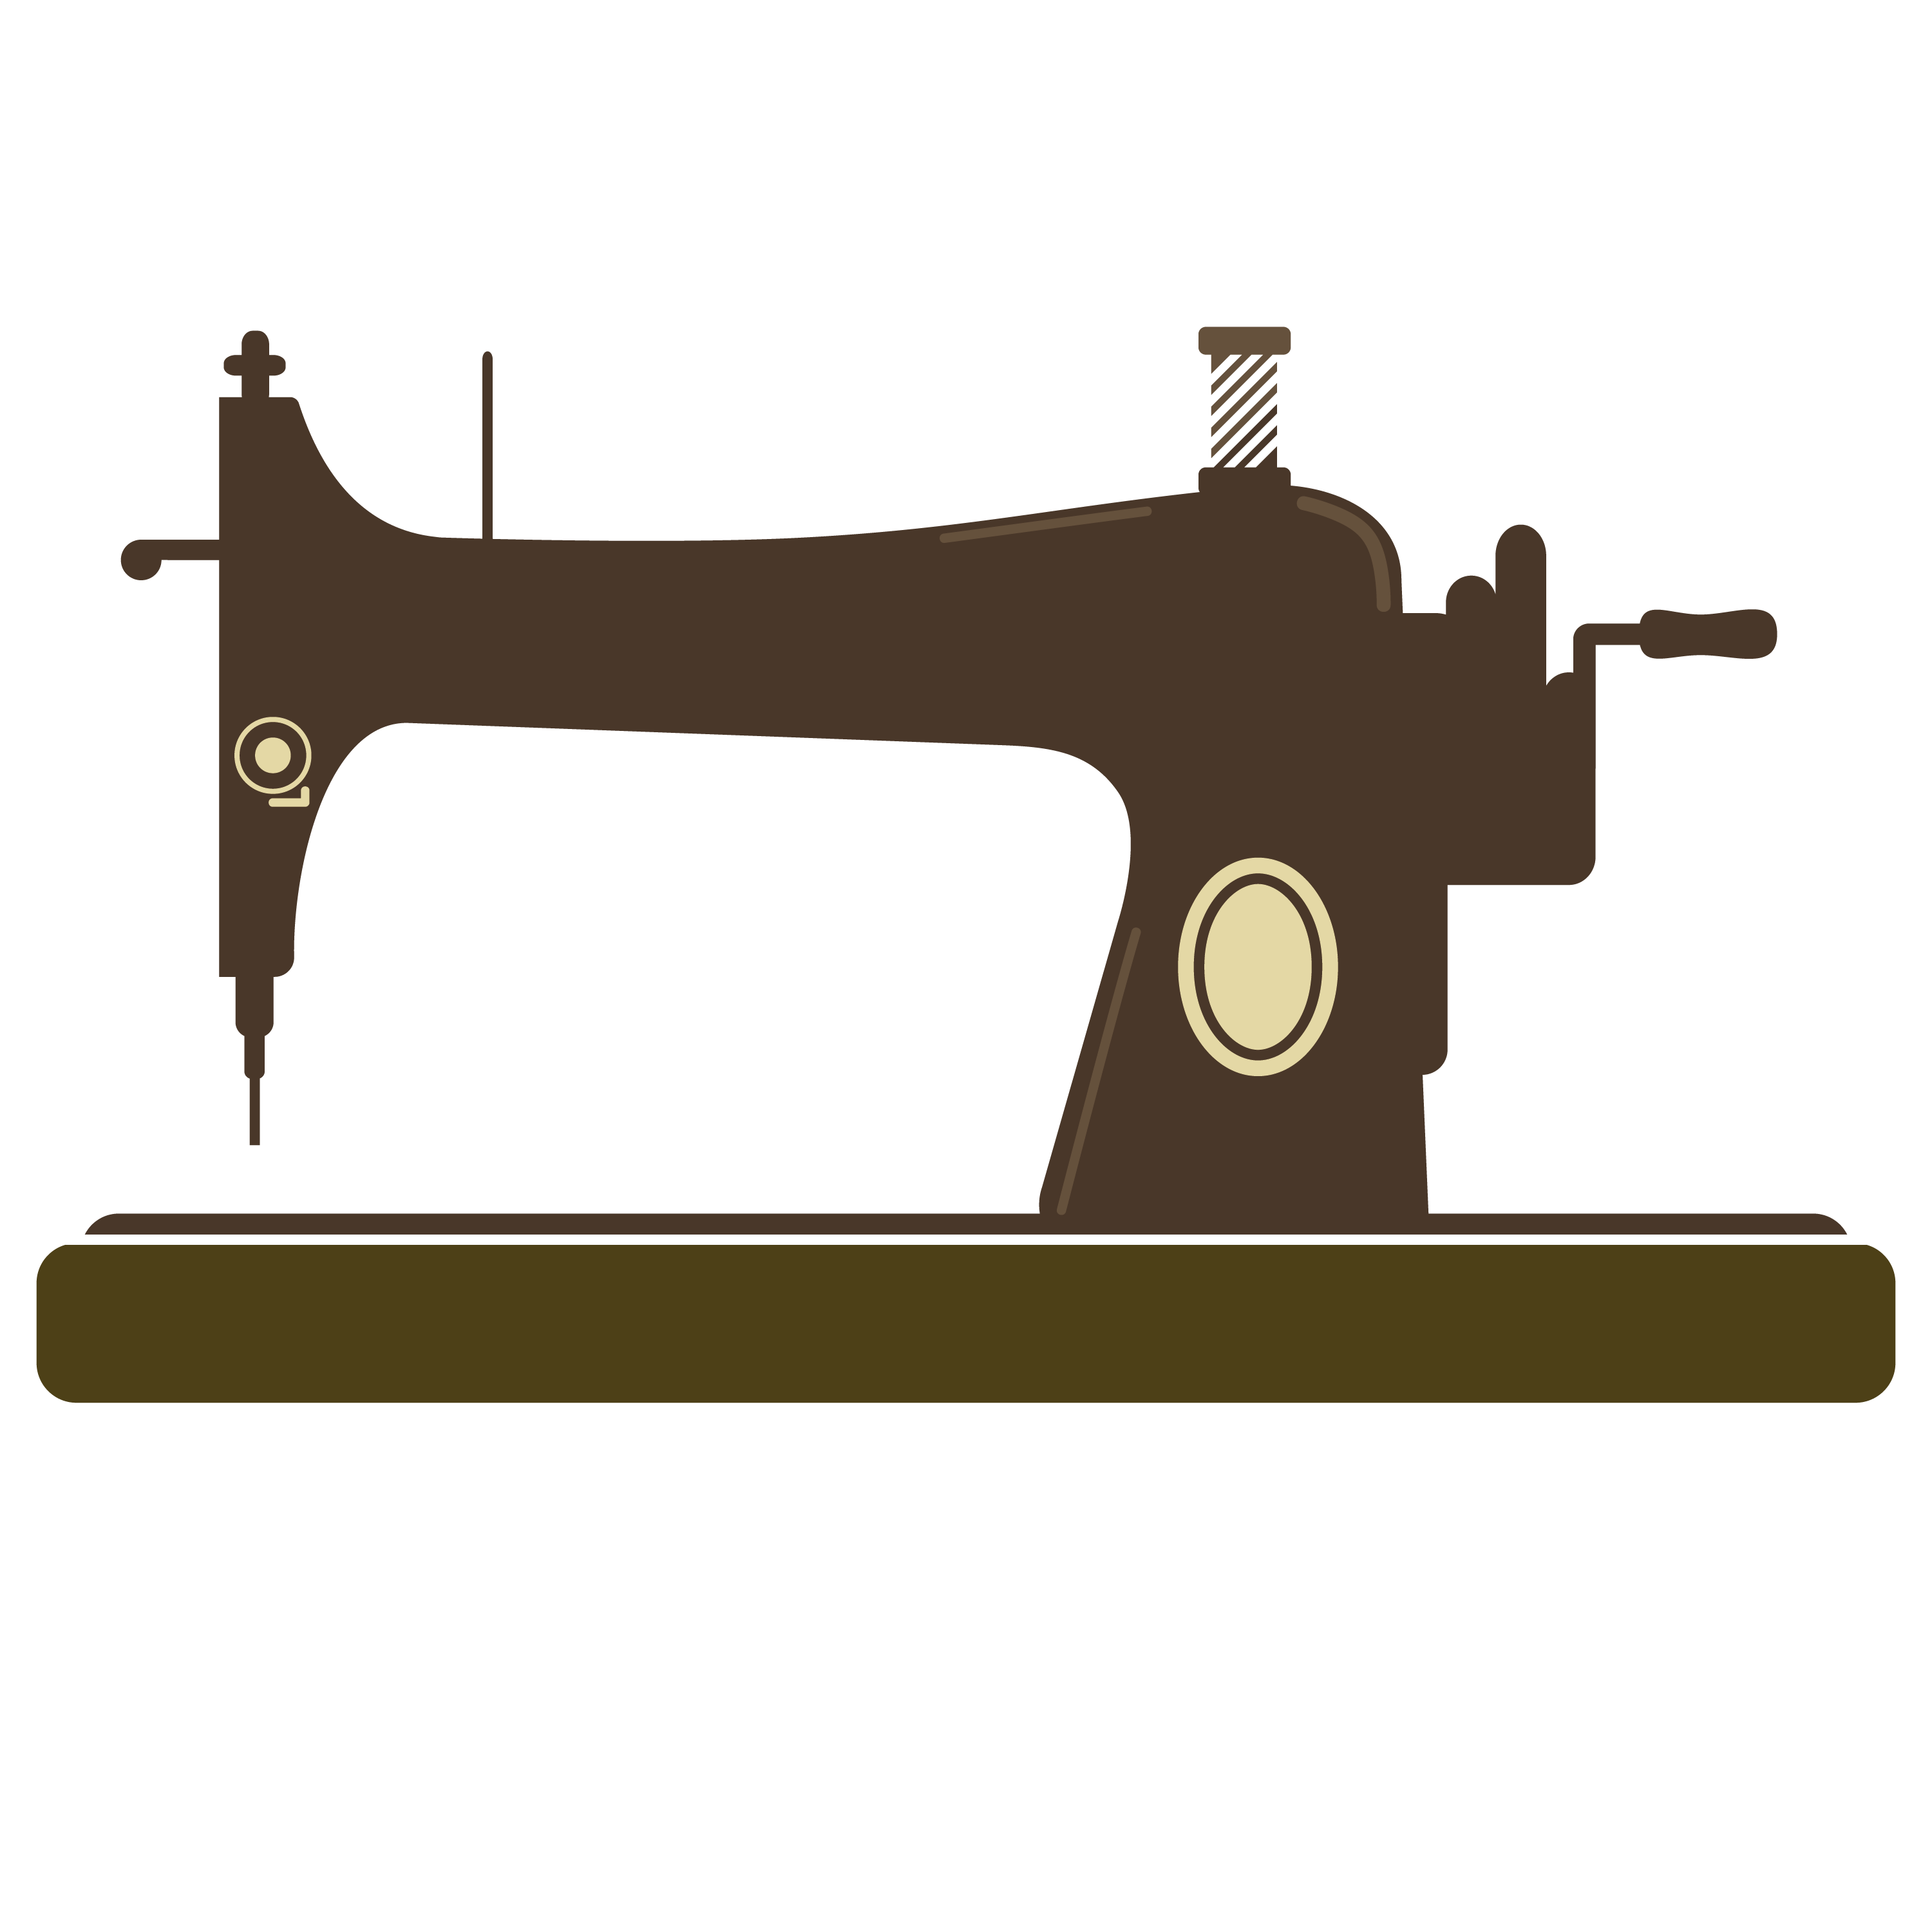 Sewing Machine clipart graphic #4